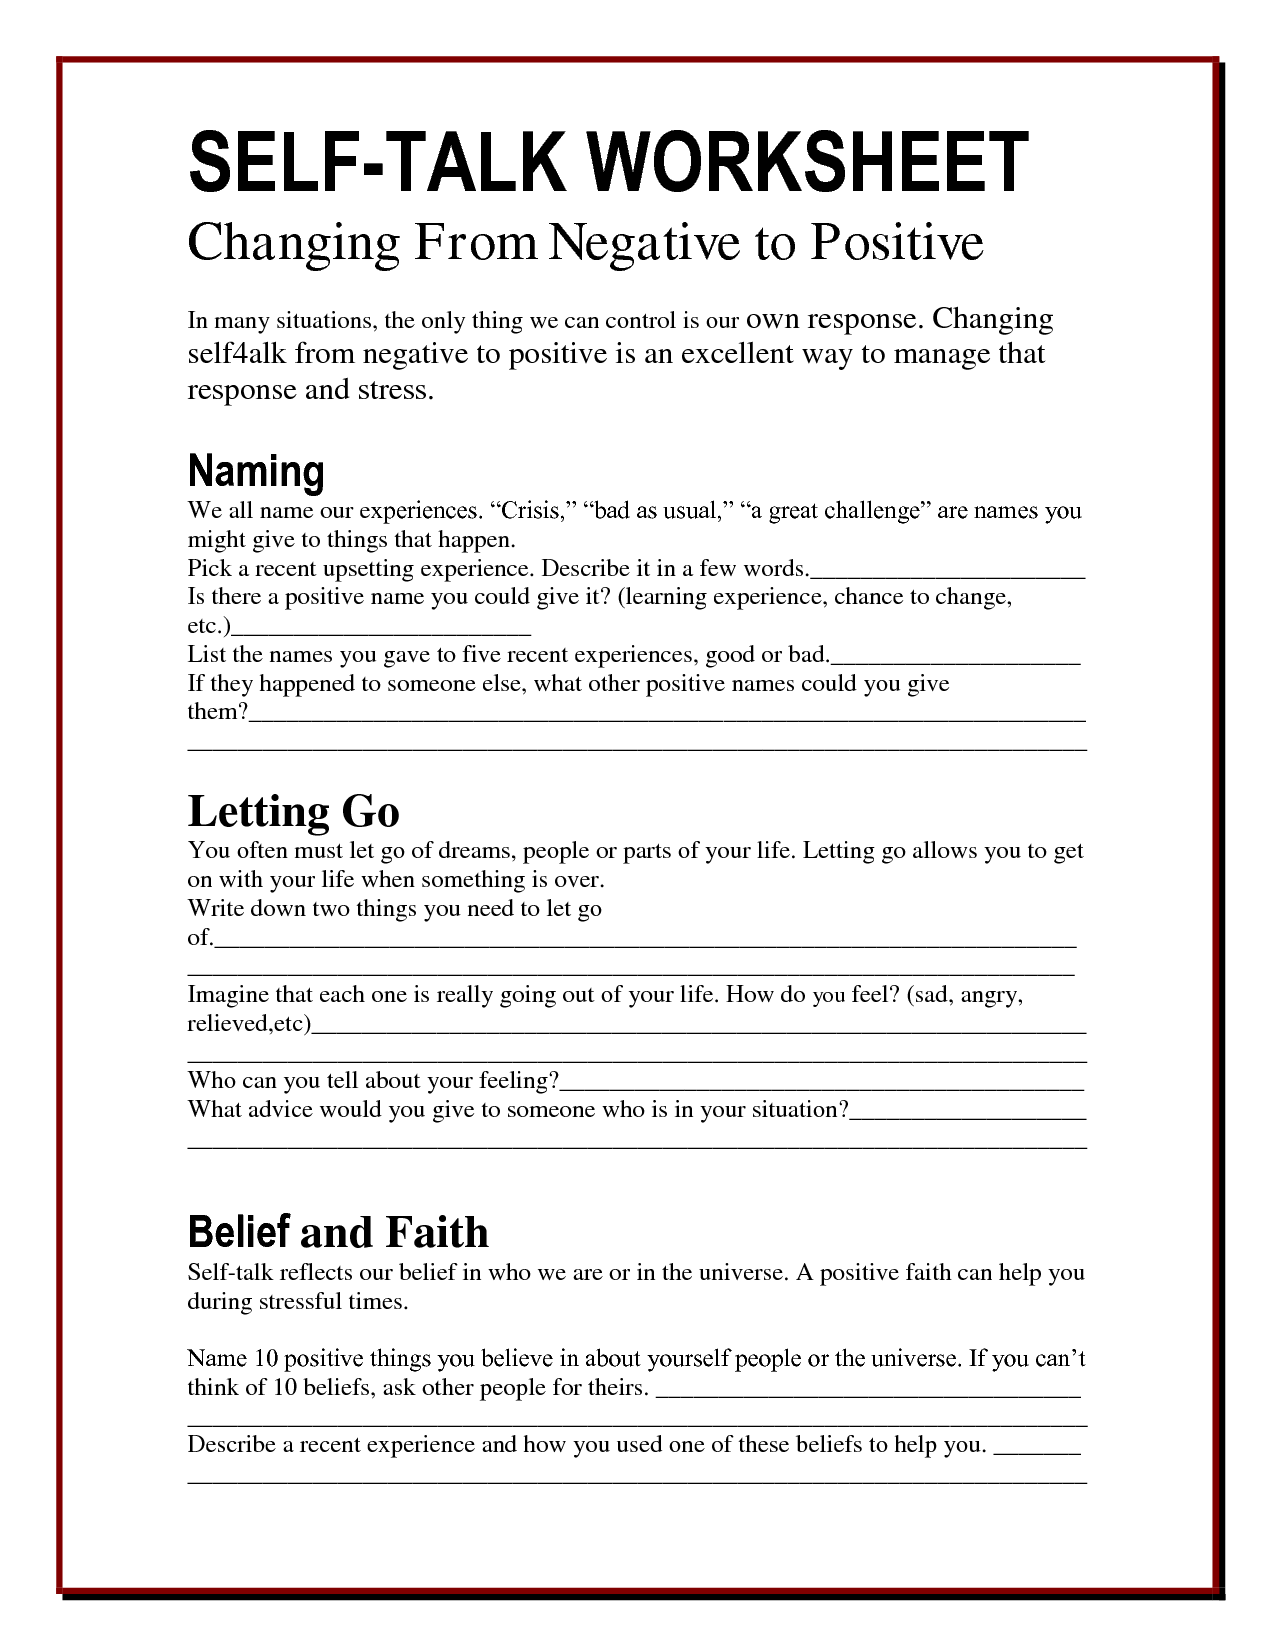 Worksheets Self Esteem Worksheets Adults for more tips to better manage the anxiety in your life visit findingstressrelief com affirmations pinterest worksheets goog